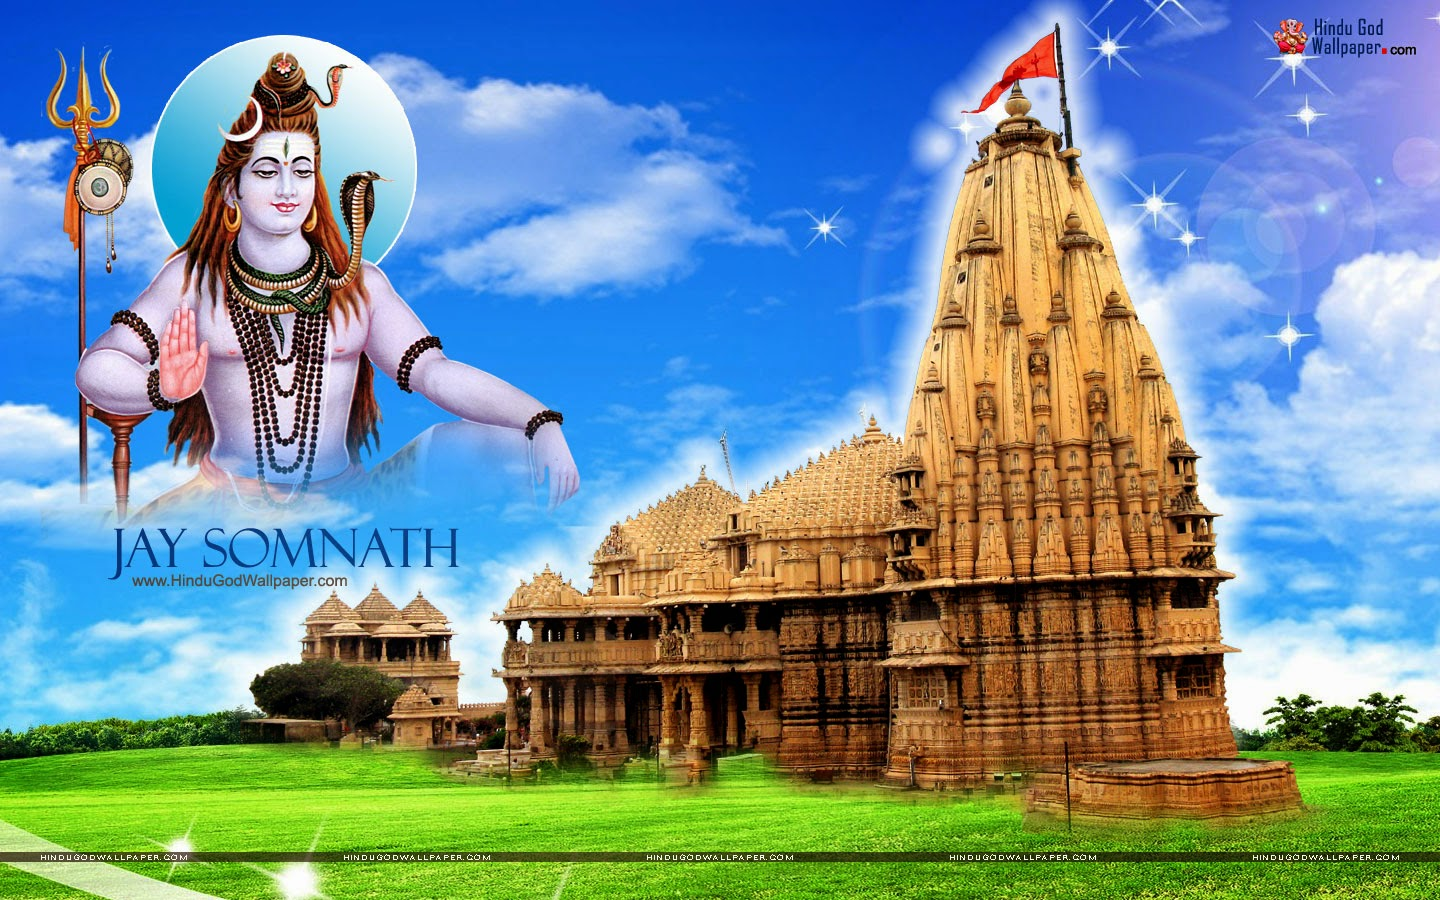 somnath wallpapers | hindu god wallpapers free download